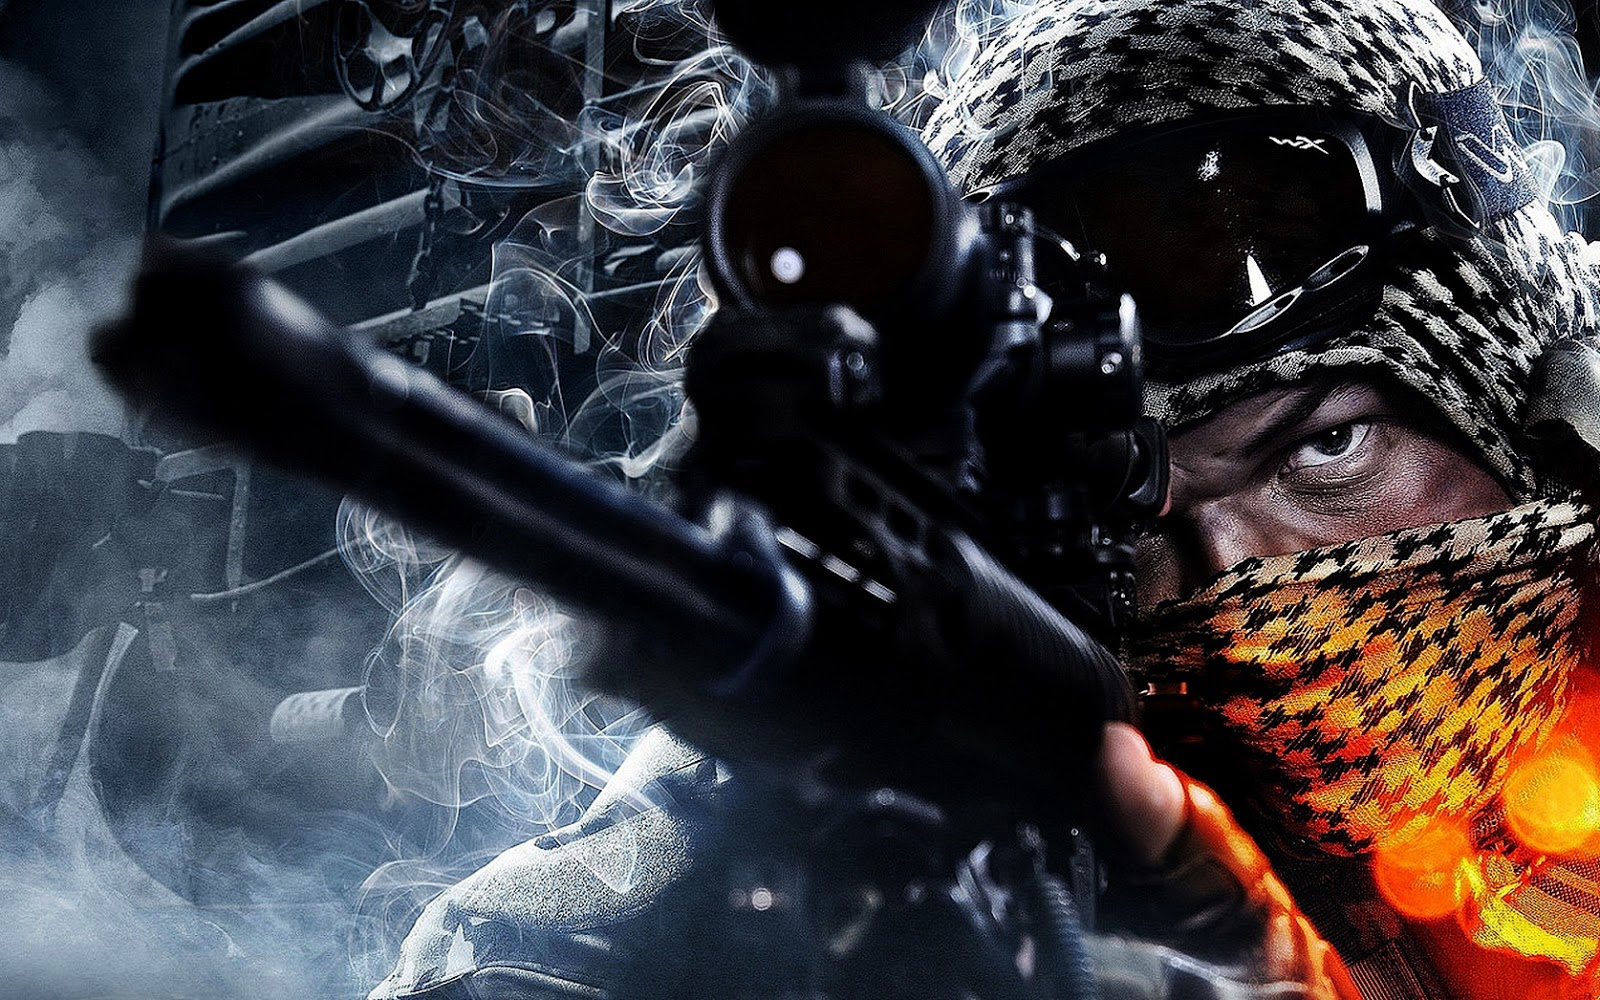 15 Best Sniper Wallpapers from Video Gameswallpapers screensavers 1600x1000